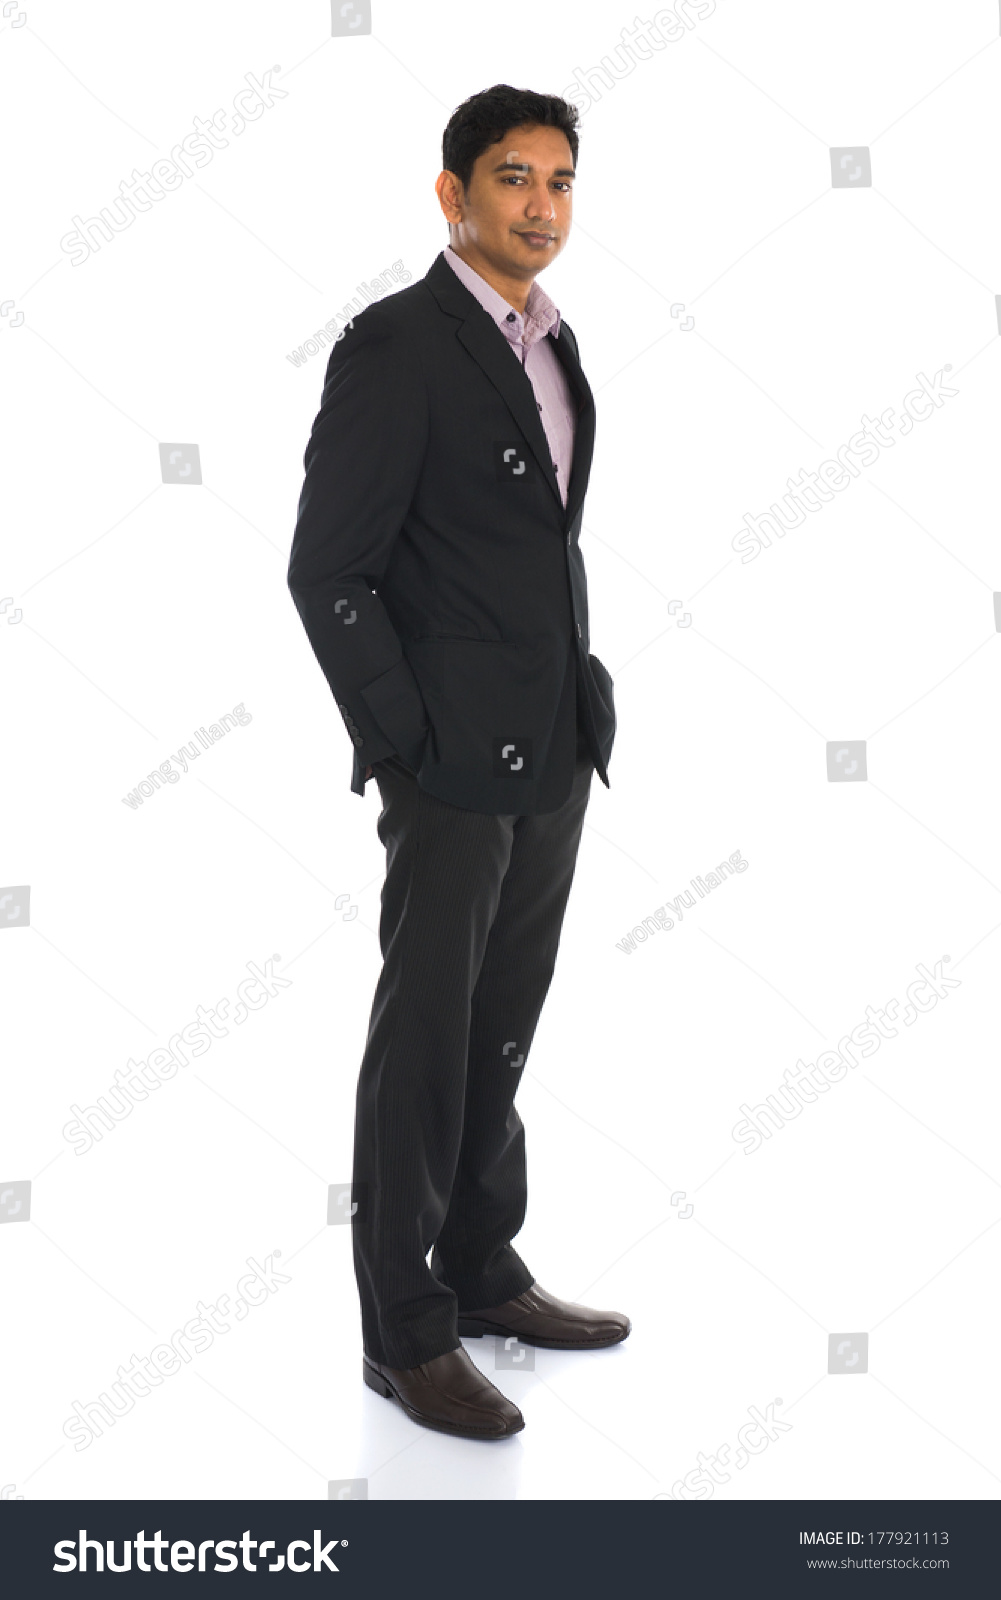 stock-photo-serious-indian-male-business-man-with-isolated-white-background-full-body-177921113.jpg